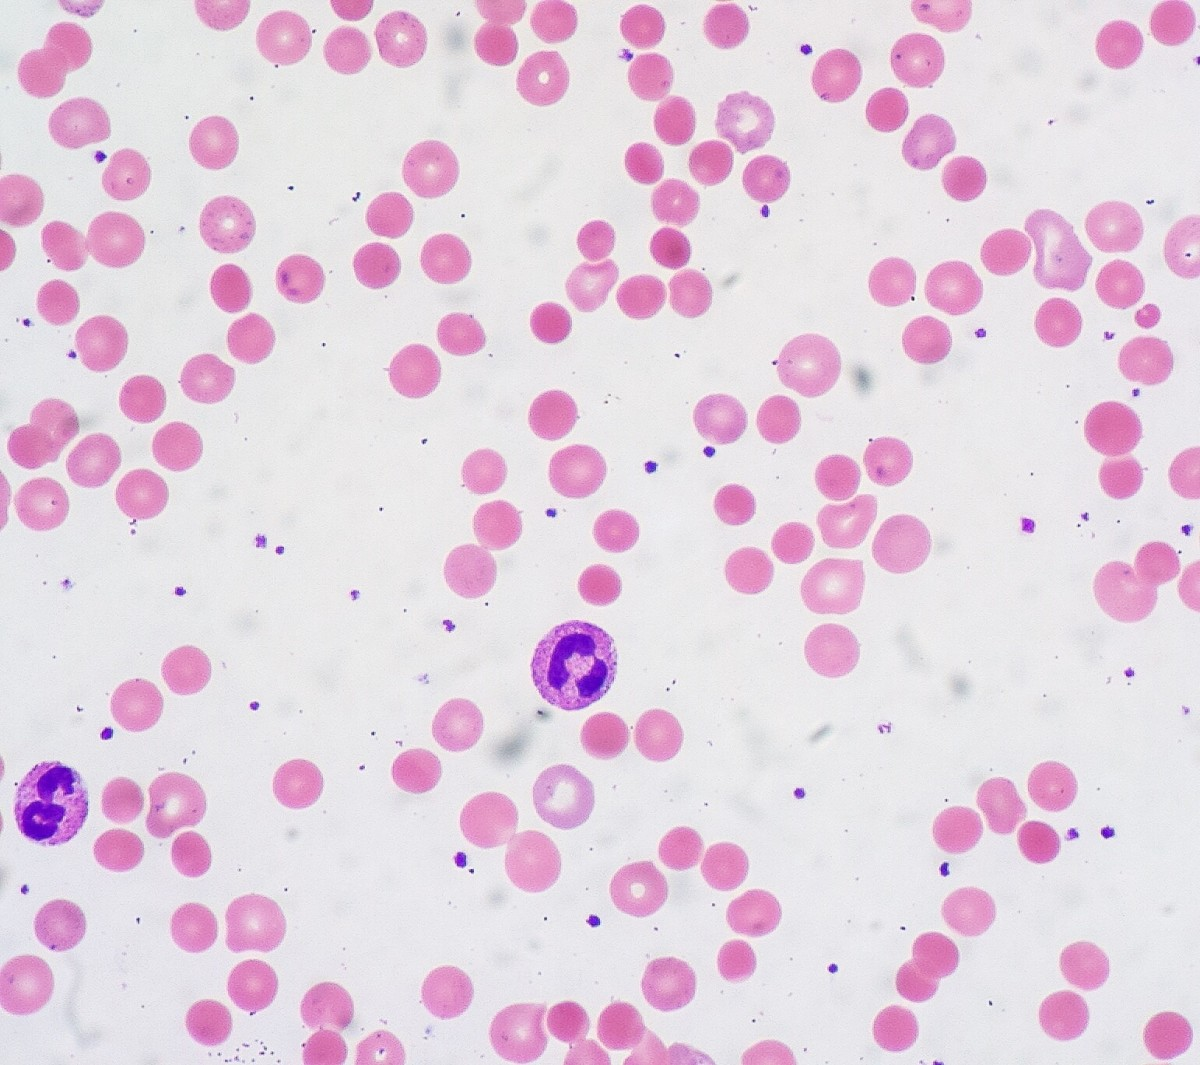 Red blood cells in autoimmune hemolytic anemia